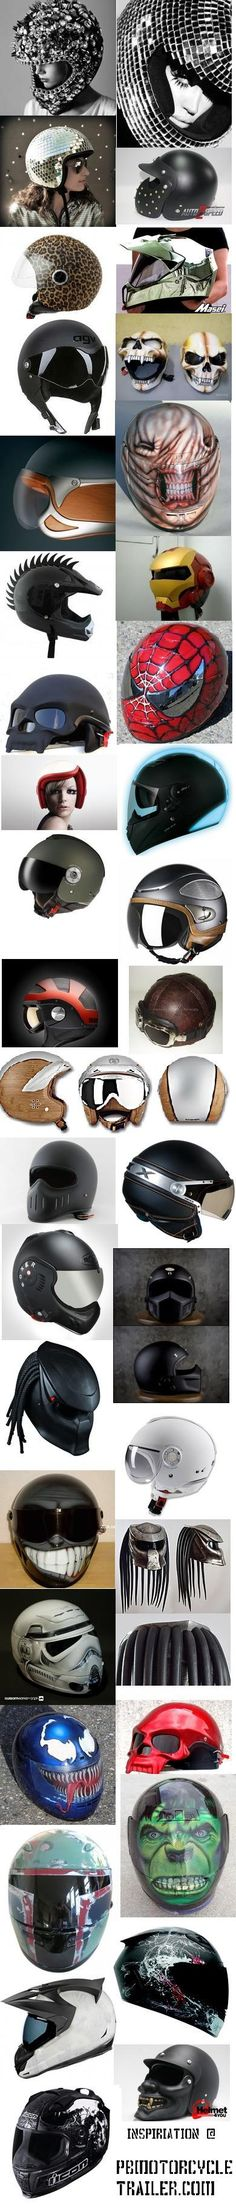 helmet collection. Gotta get a bike to have one of these